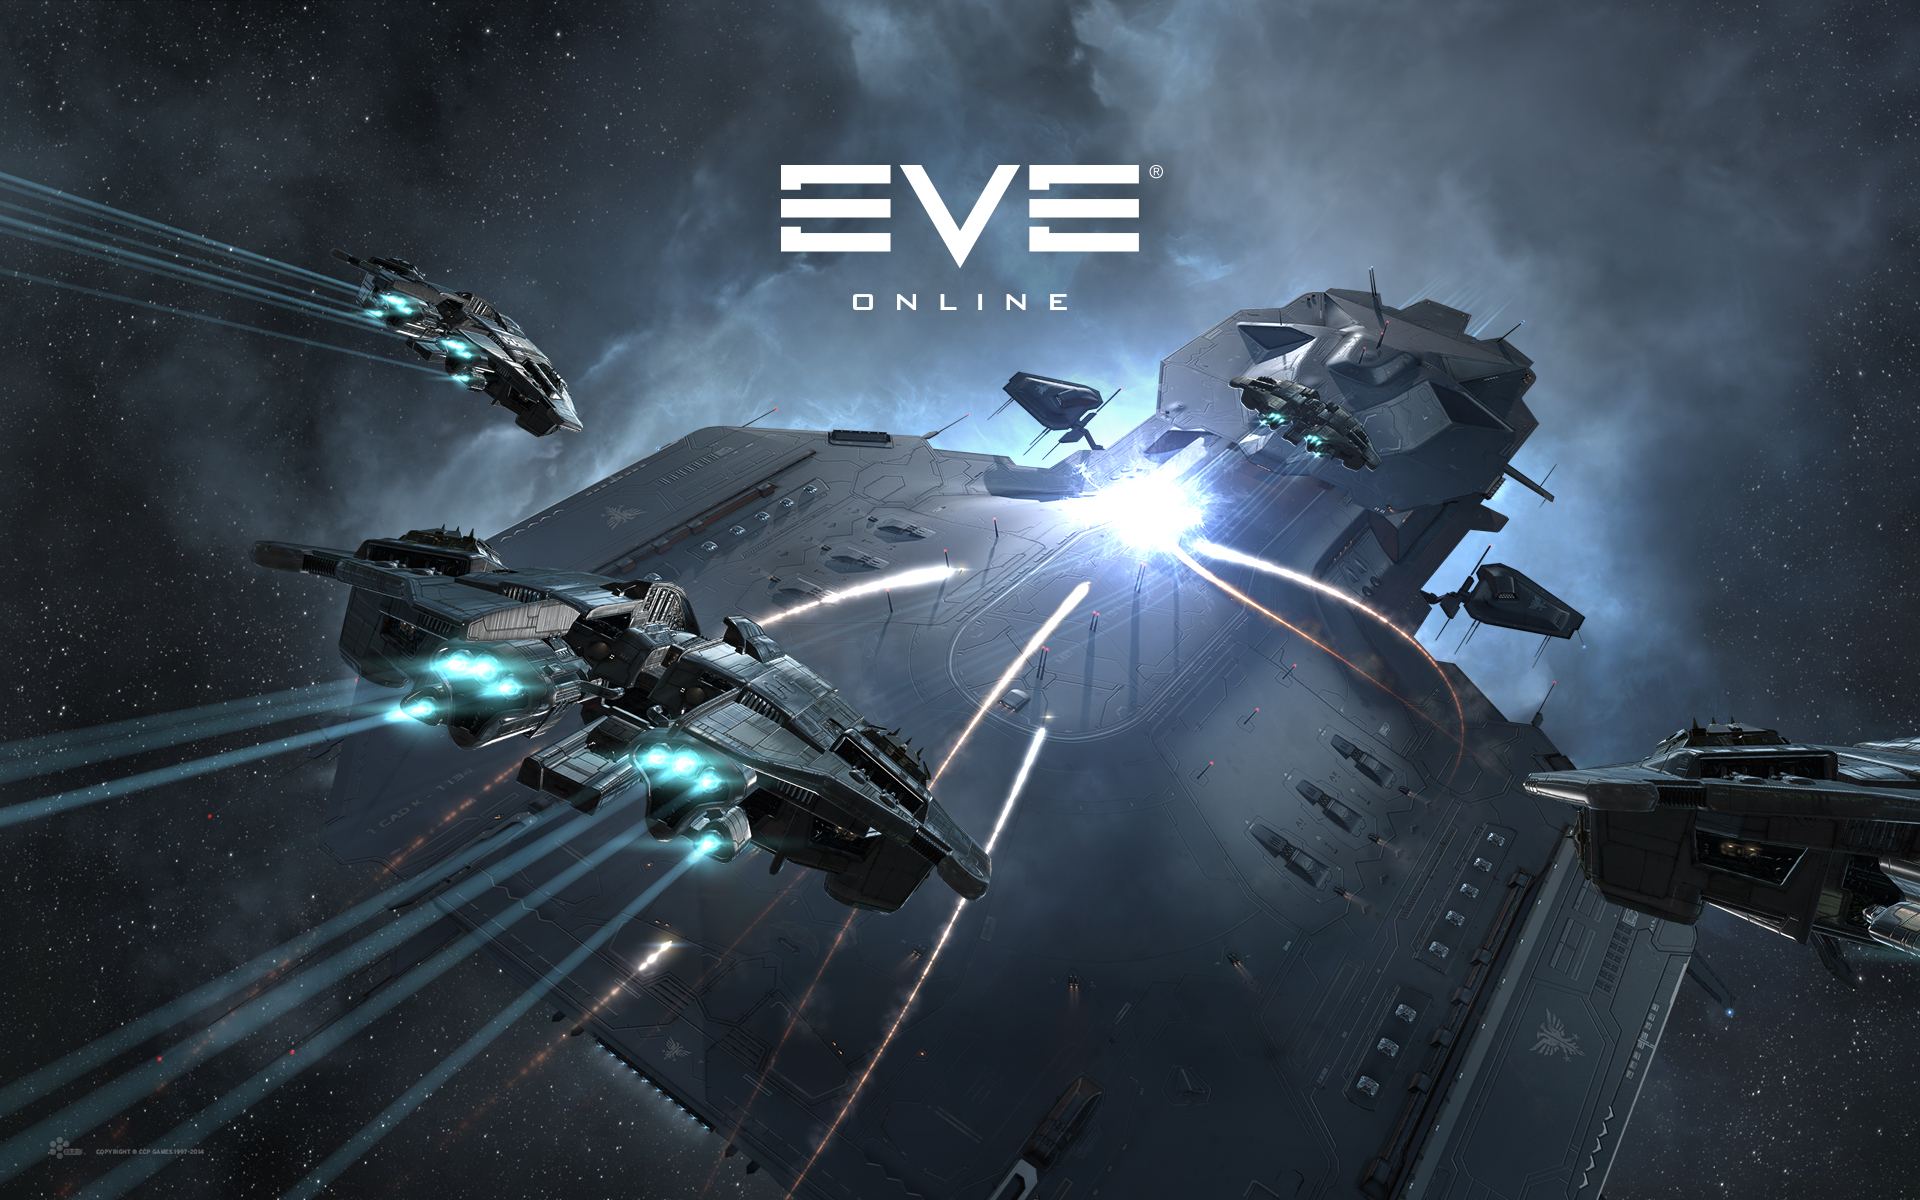 Stealth Bomber Attack   Wallpapers   EVE Online 1920x1200